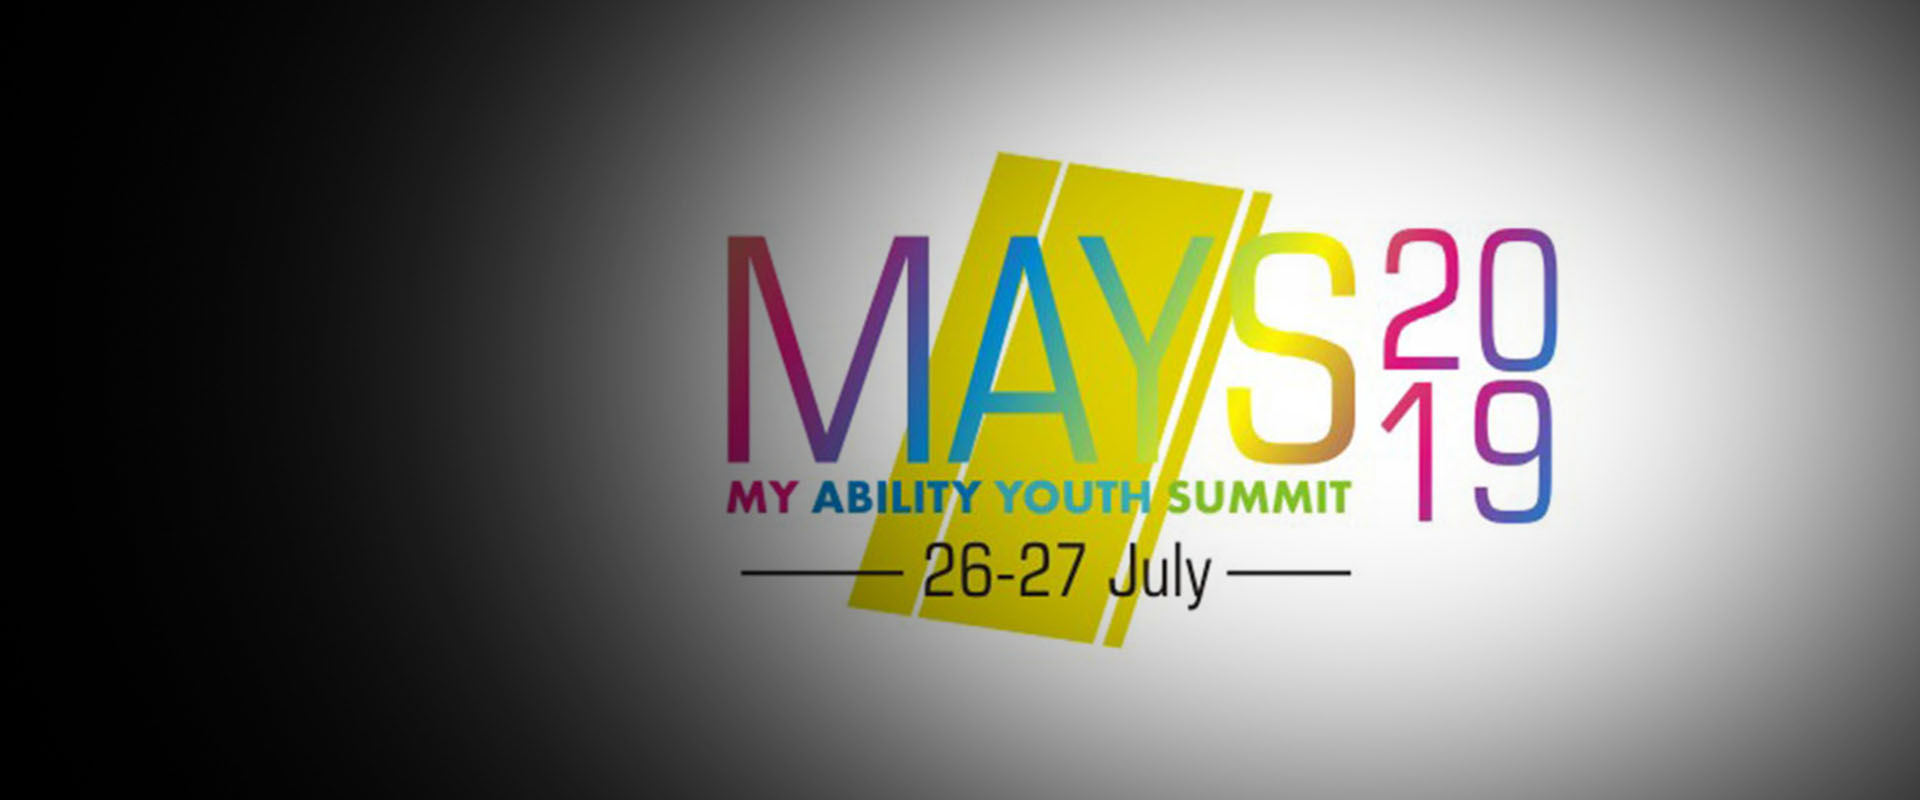 MAYS2019 Summit - May Ability Youth Summit - Intellectual Foundations